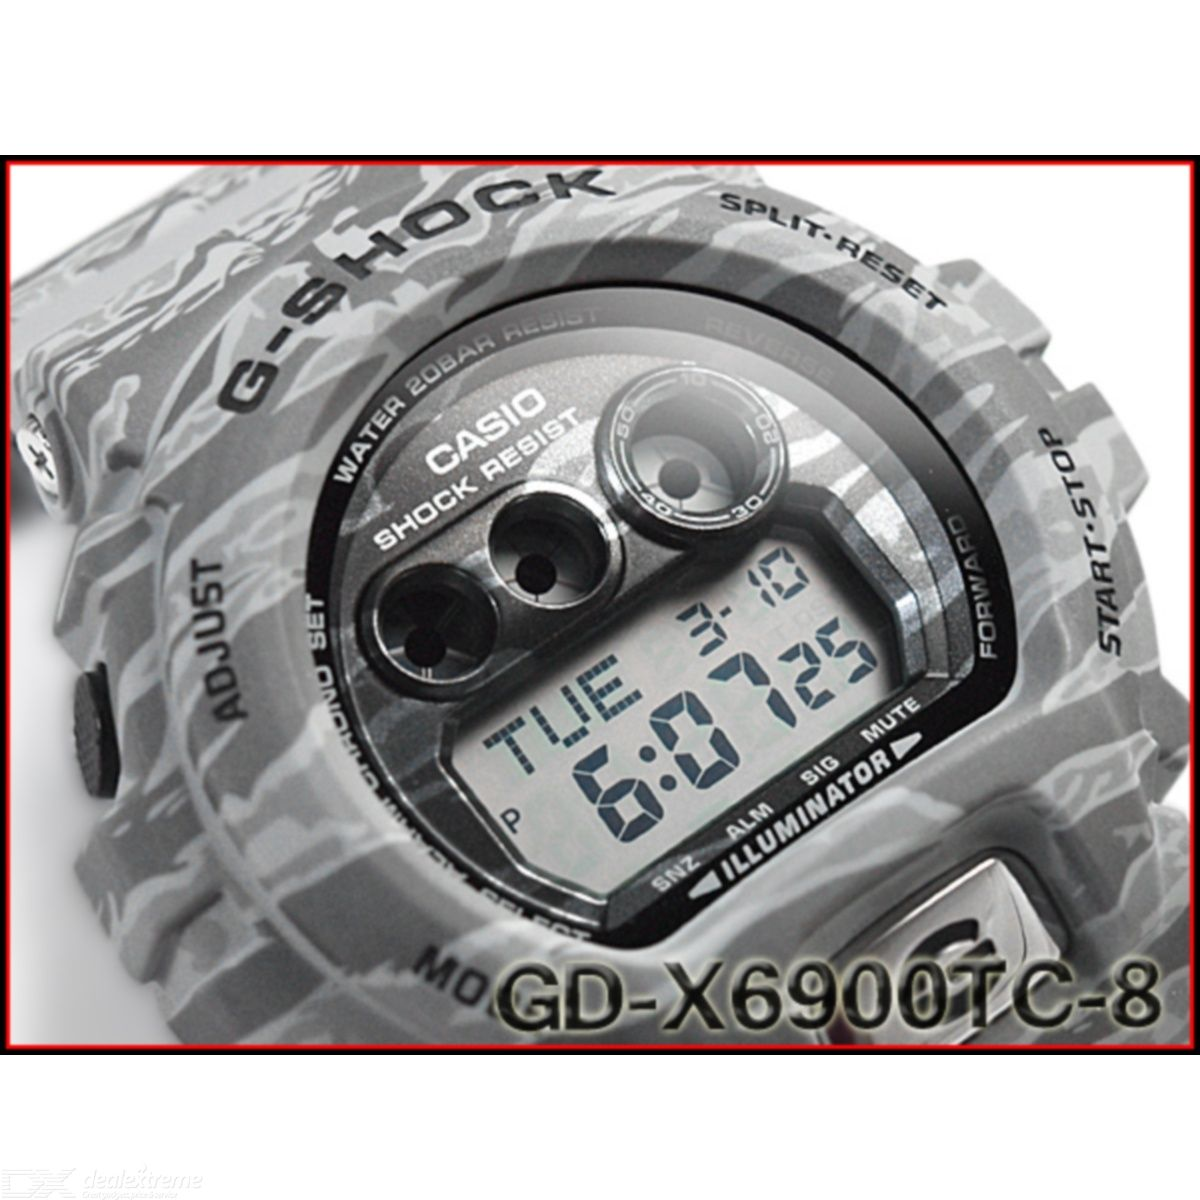 Casio G-Shock GD-X6900TC-8CR Camouflage series Mens Watch - Grey